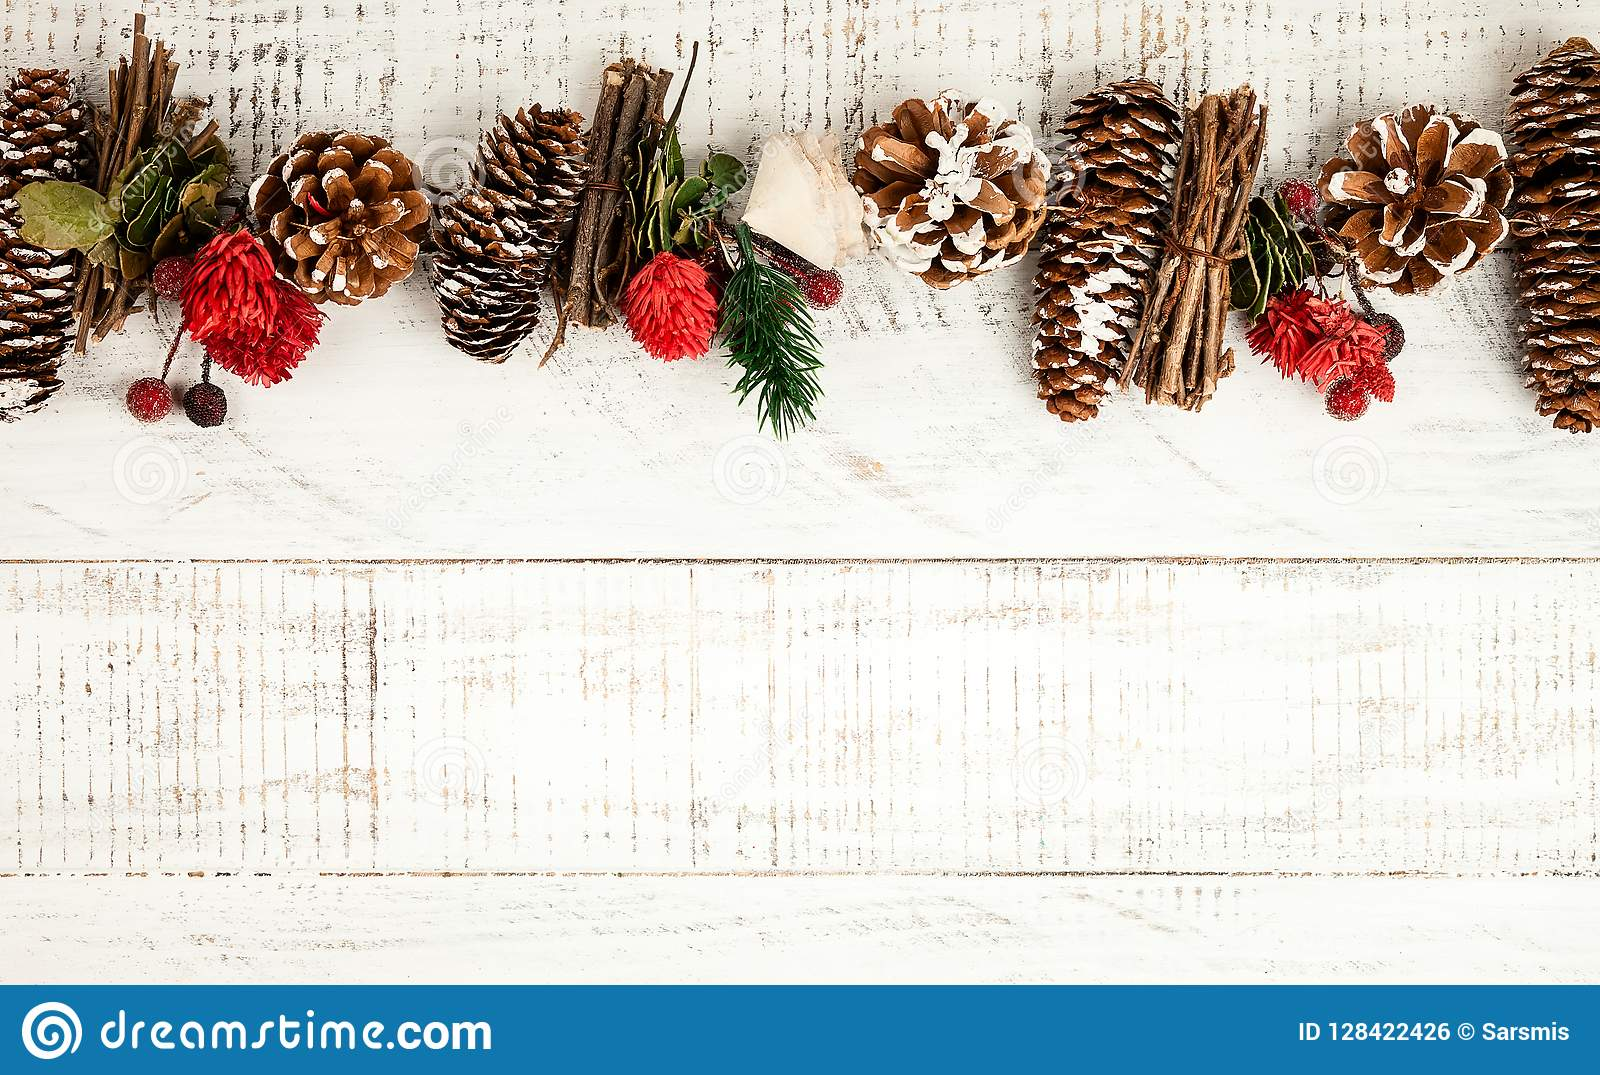 Winter Background With Rustic Christmas Garland Stock Photo Image Of Decorative Natura 128422426